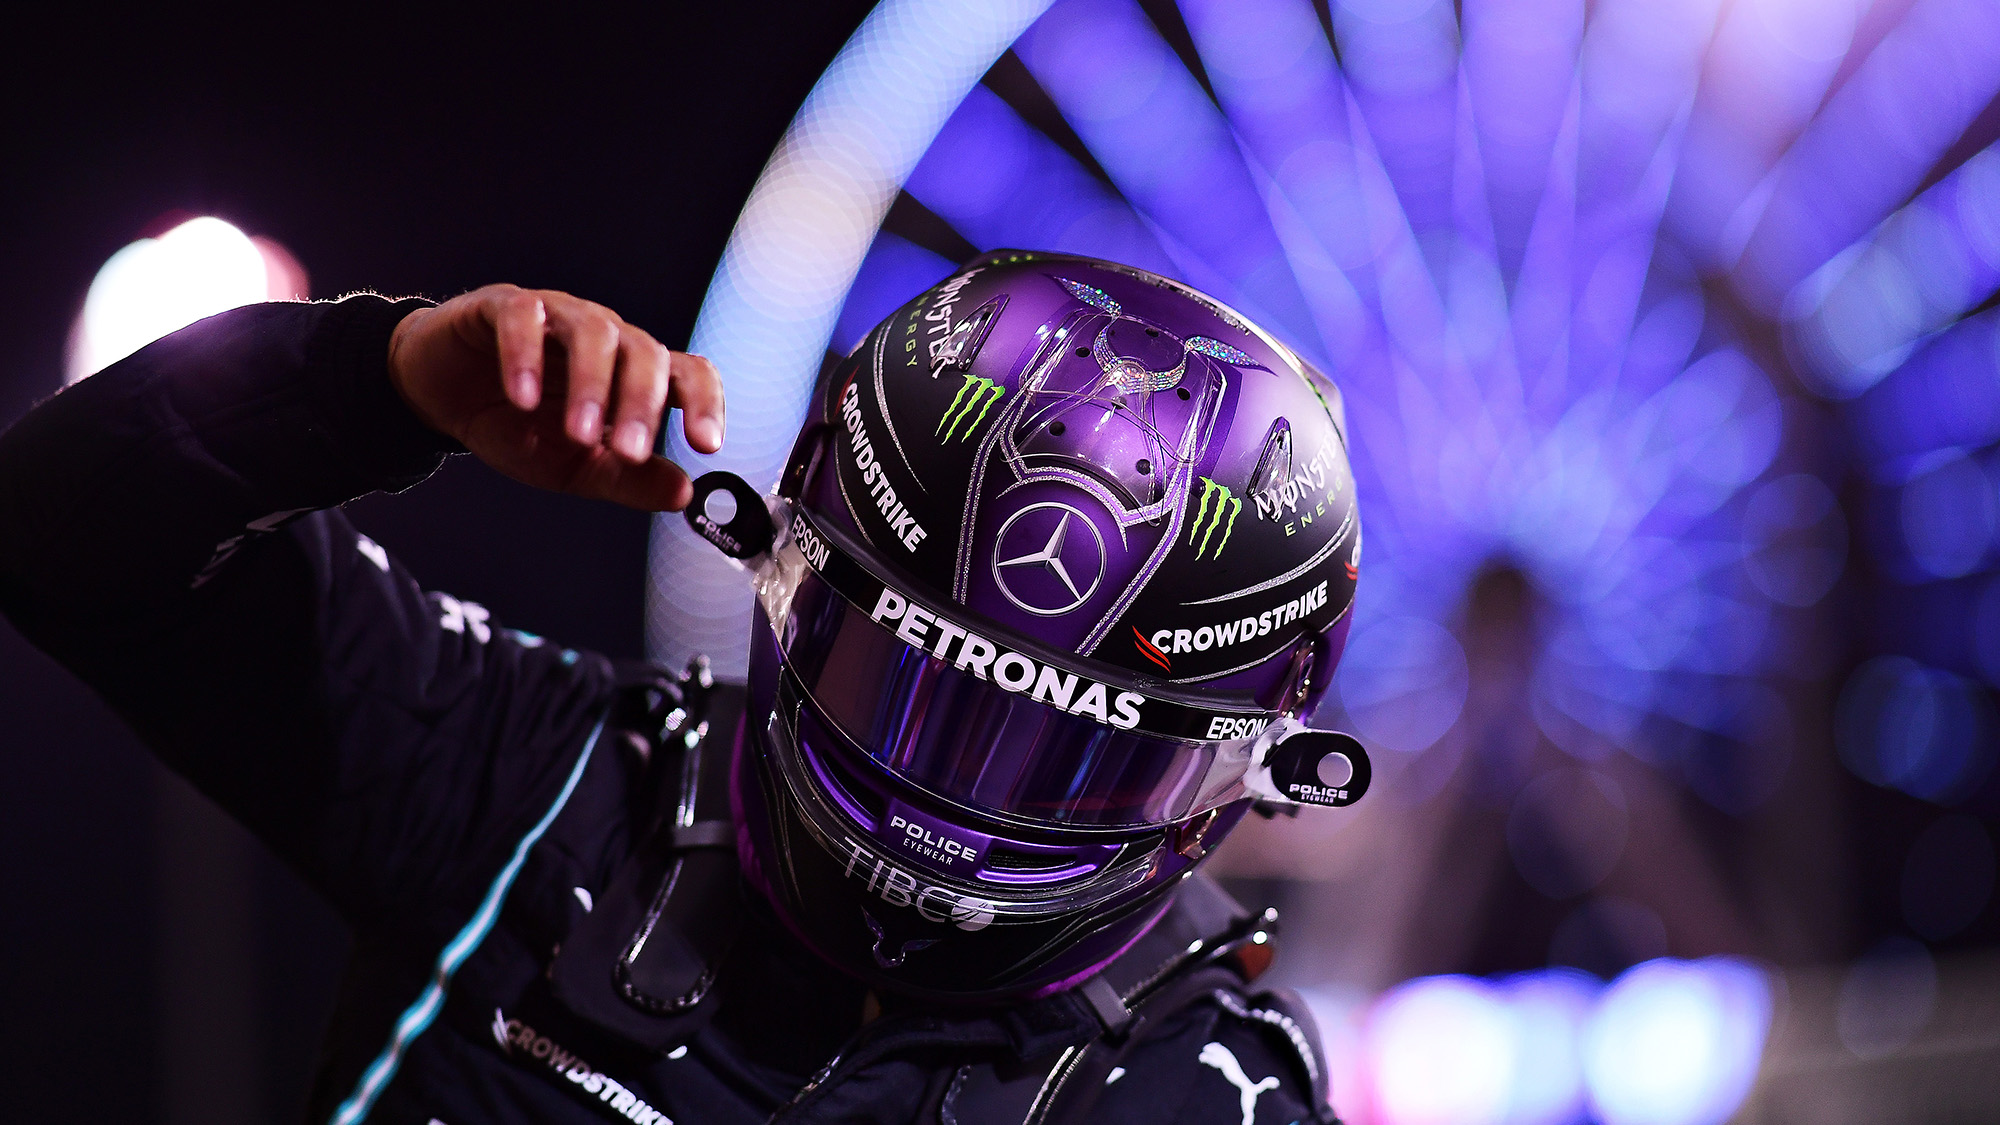 Lewis Hamilton after qualifying second for the 2021 Bahrain Grand Prix